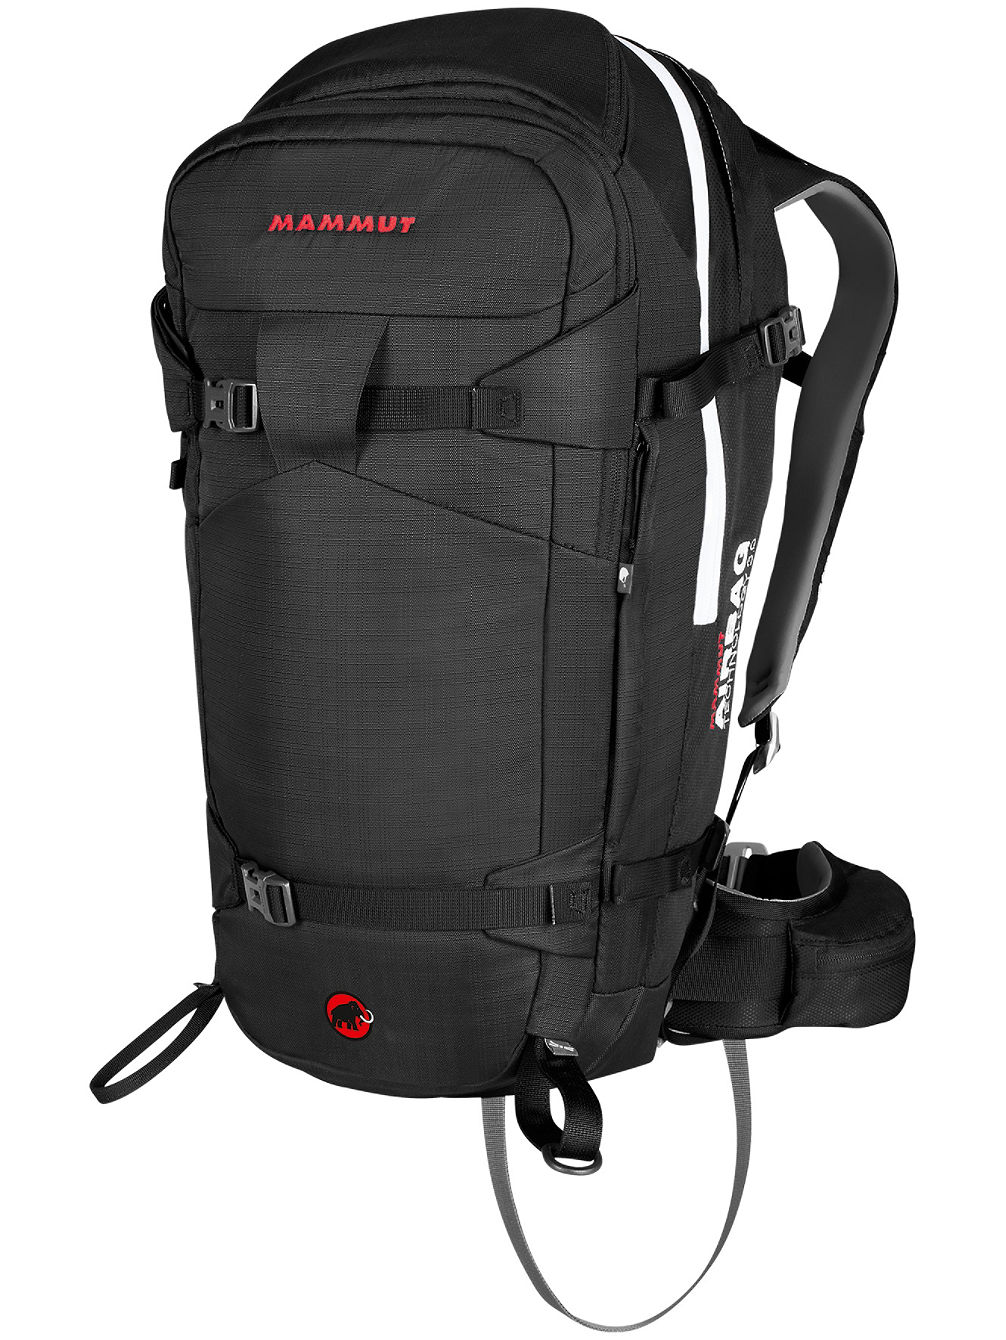 Pro Removable Airbag 3.0 35L Backpack